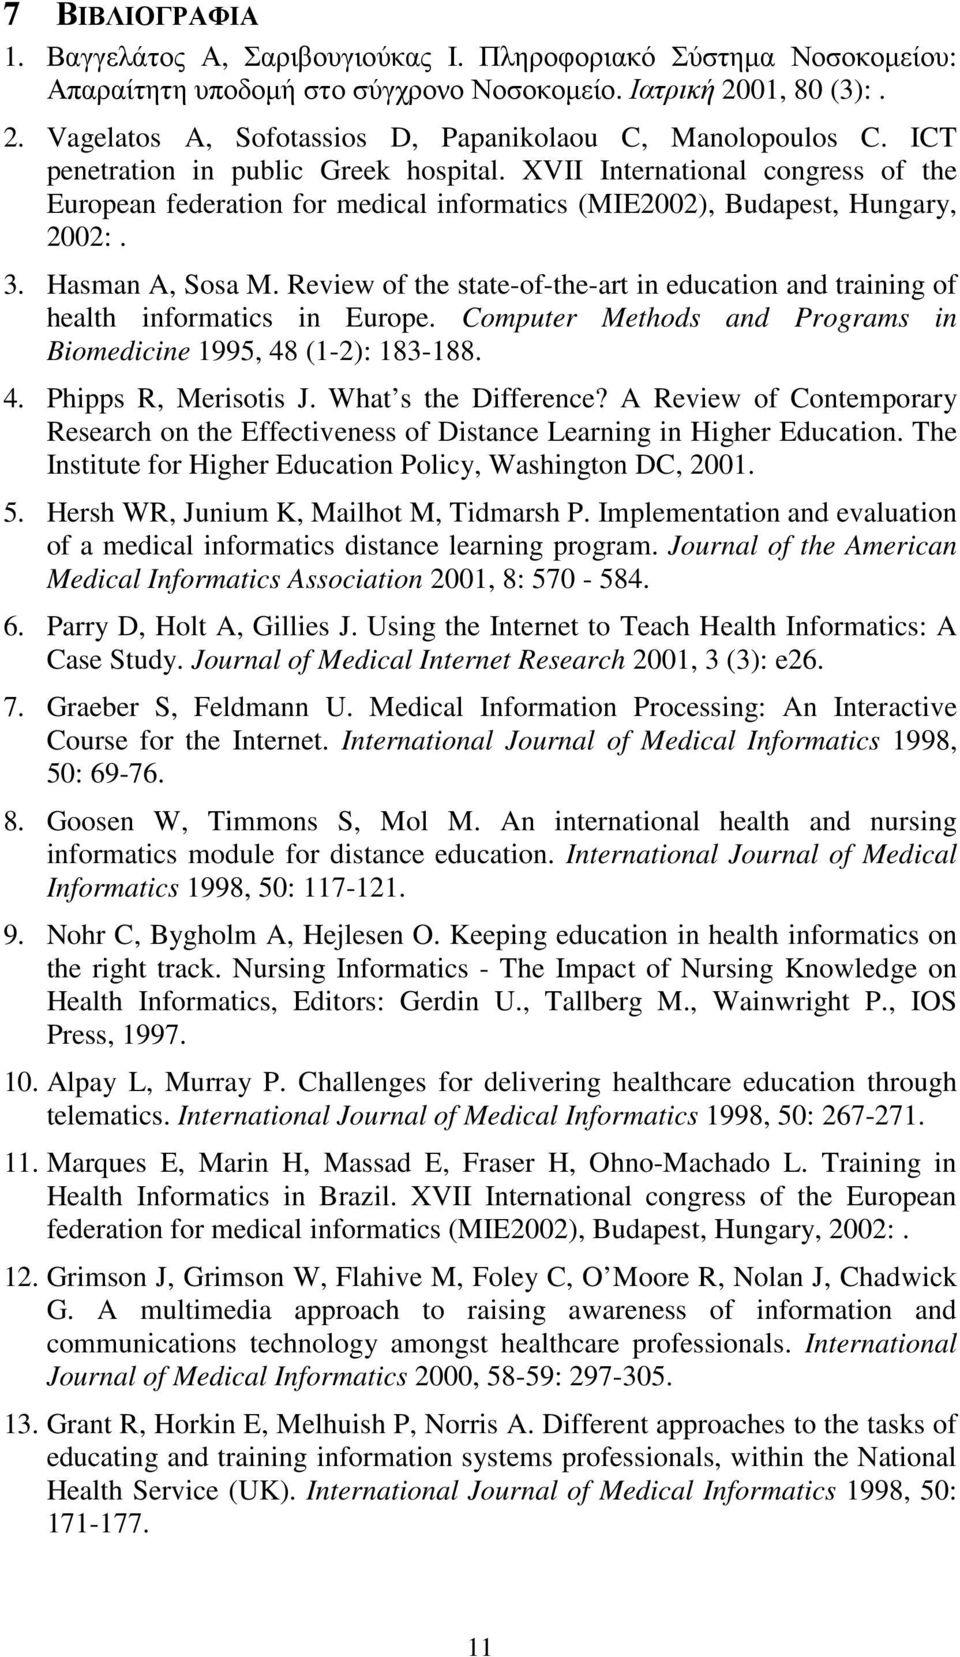 Review of the state-of-the-art in education and training of health informatics in Europe. Computer Methods and Programs in Biomedicine 1995, 48 (1-2): 183-188. 4. Phipps R, Merisotis J.